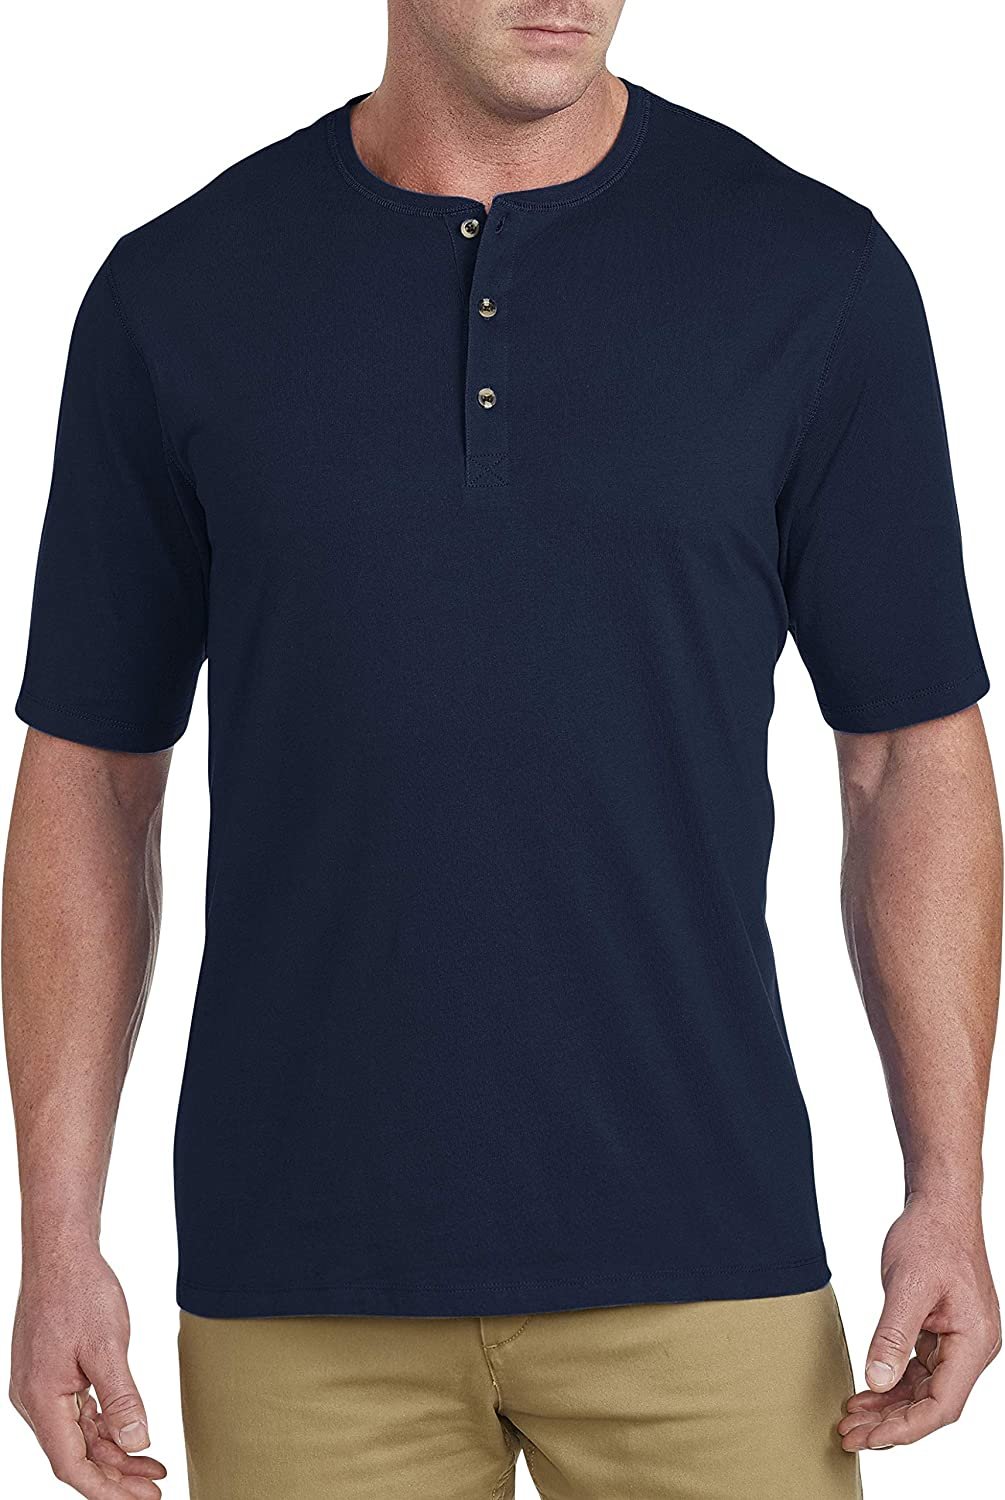 Harbor Bay by DXL Big and Tall Wicking Jersey Henley Shirt